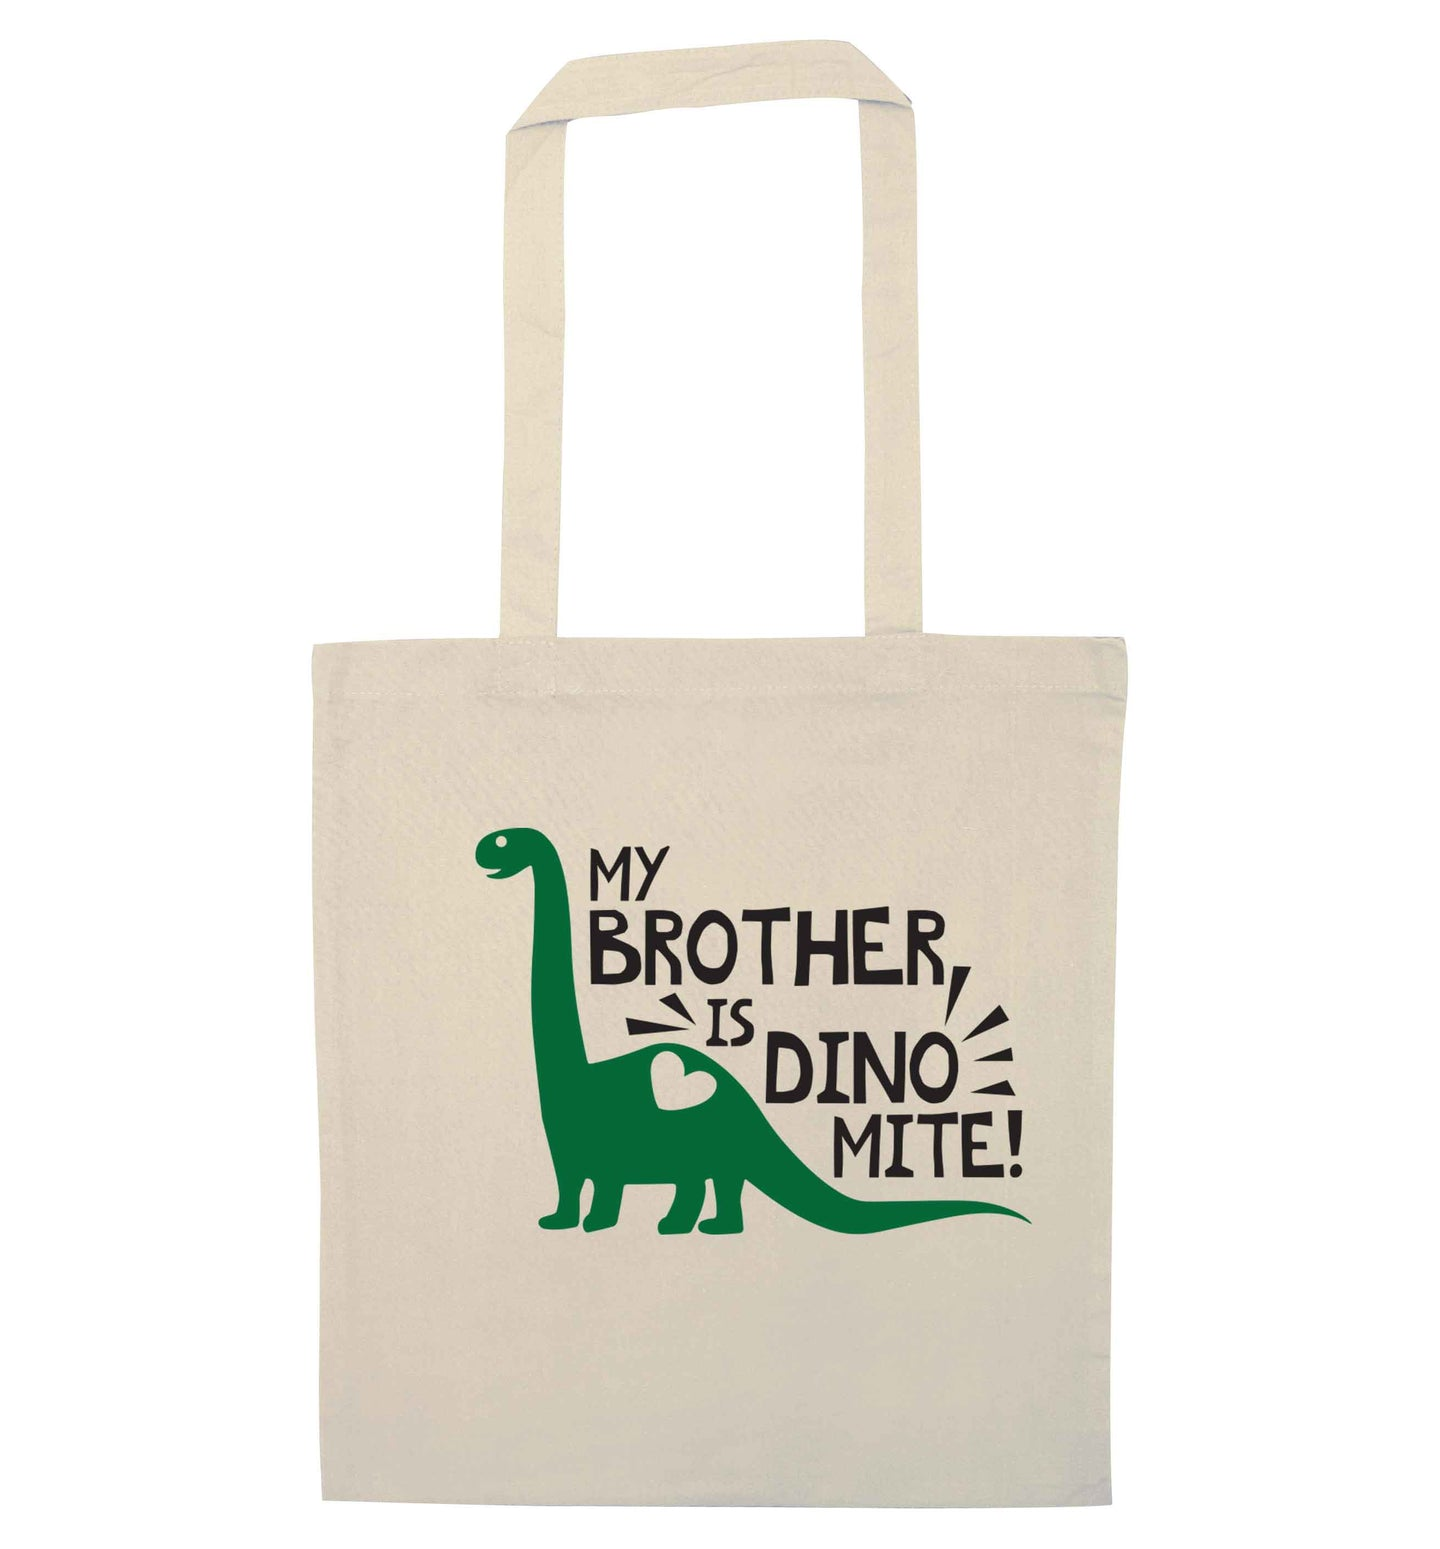 My brother is dinomite! natural tote bag